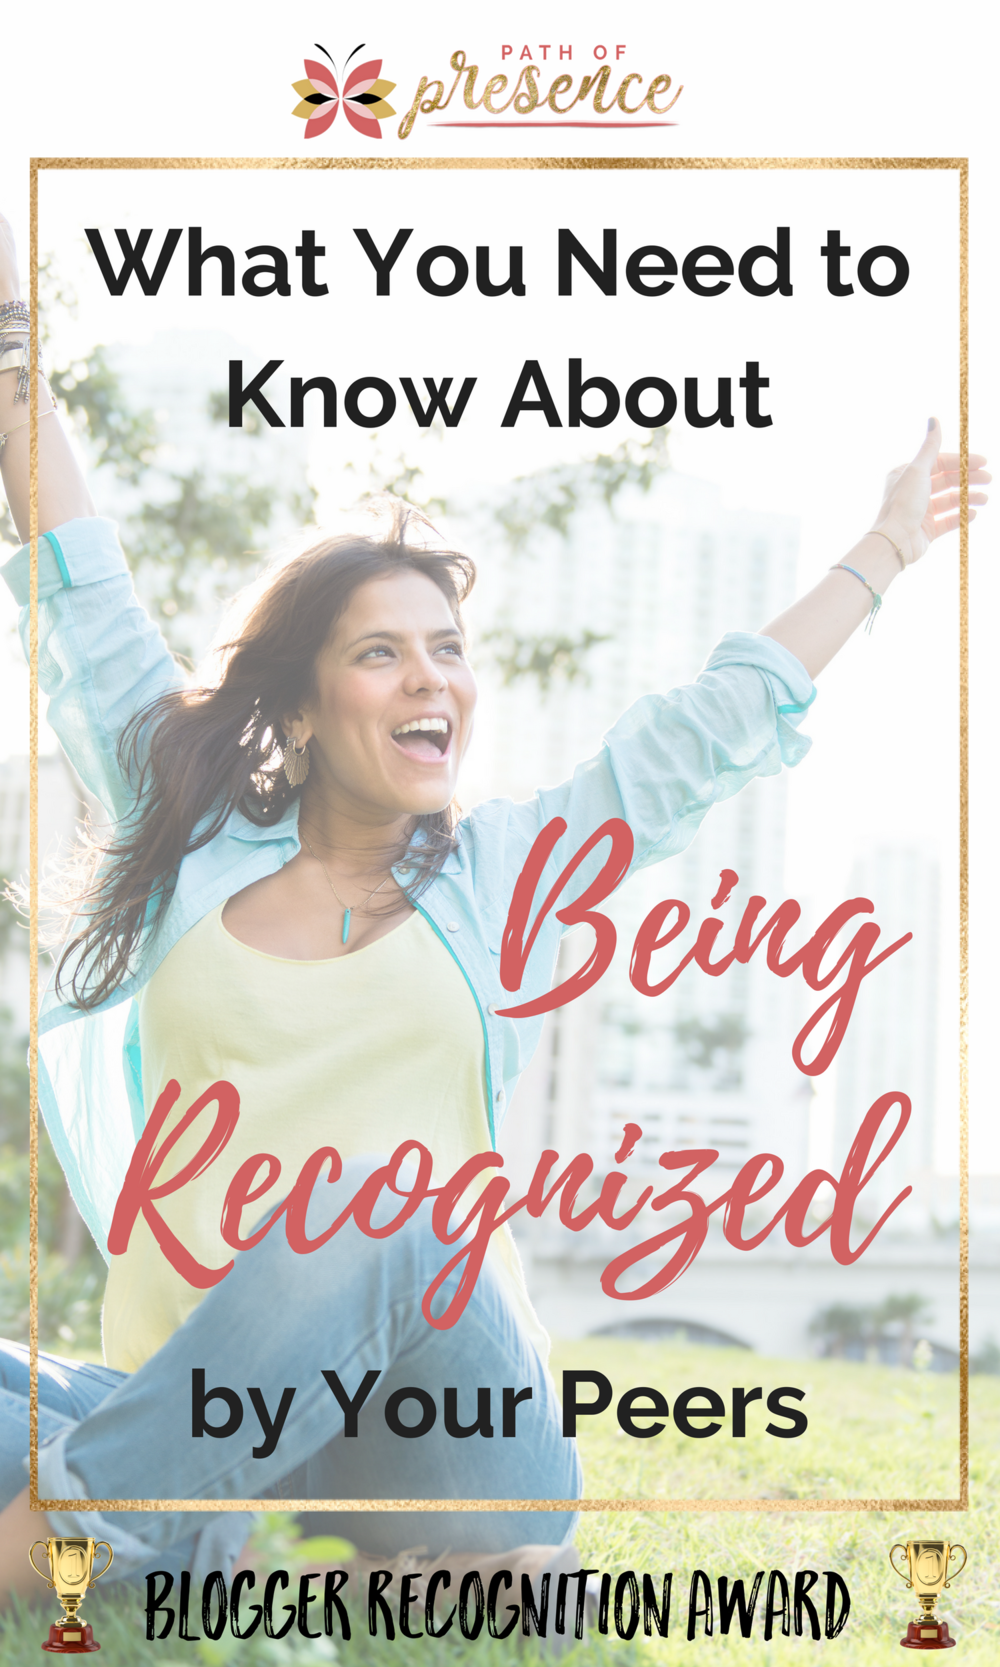 What you need to know about being recognized by peers - Blogger Recognition Award - Evelyn Foreman - Path of Presence